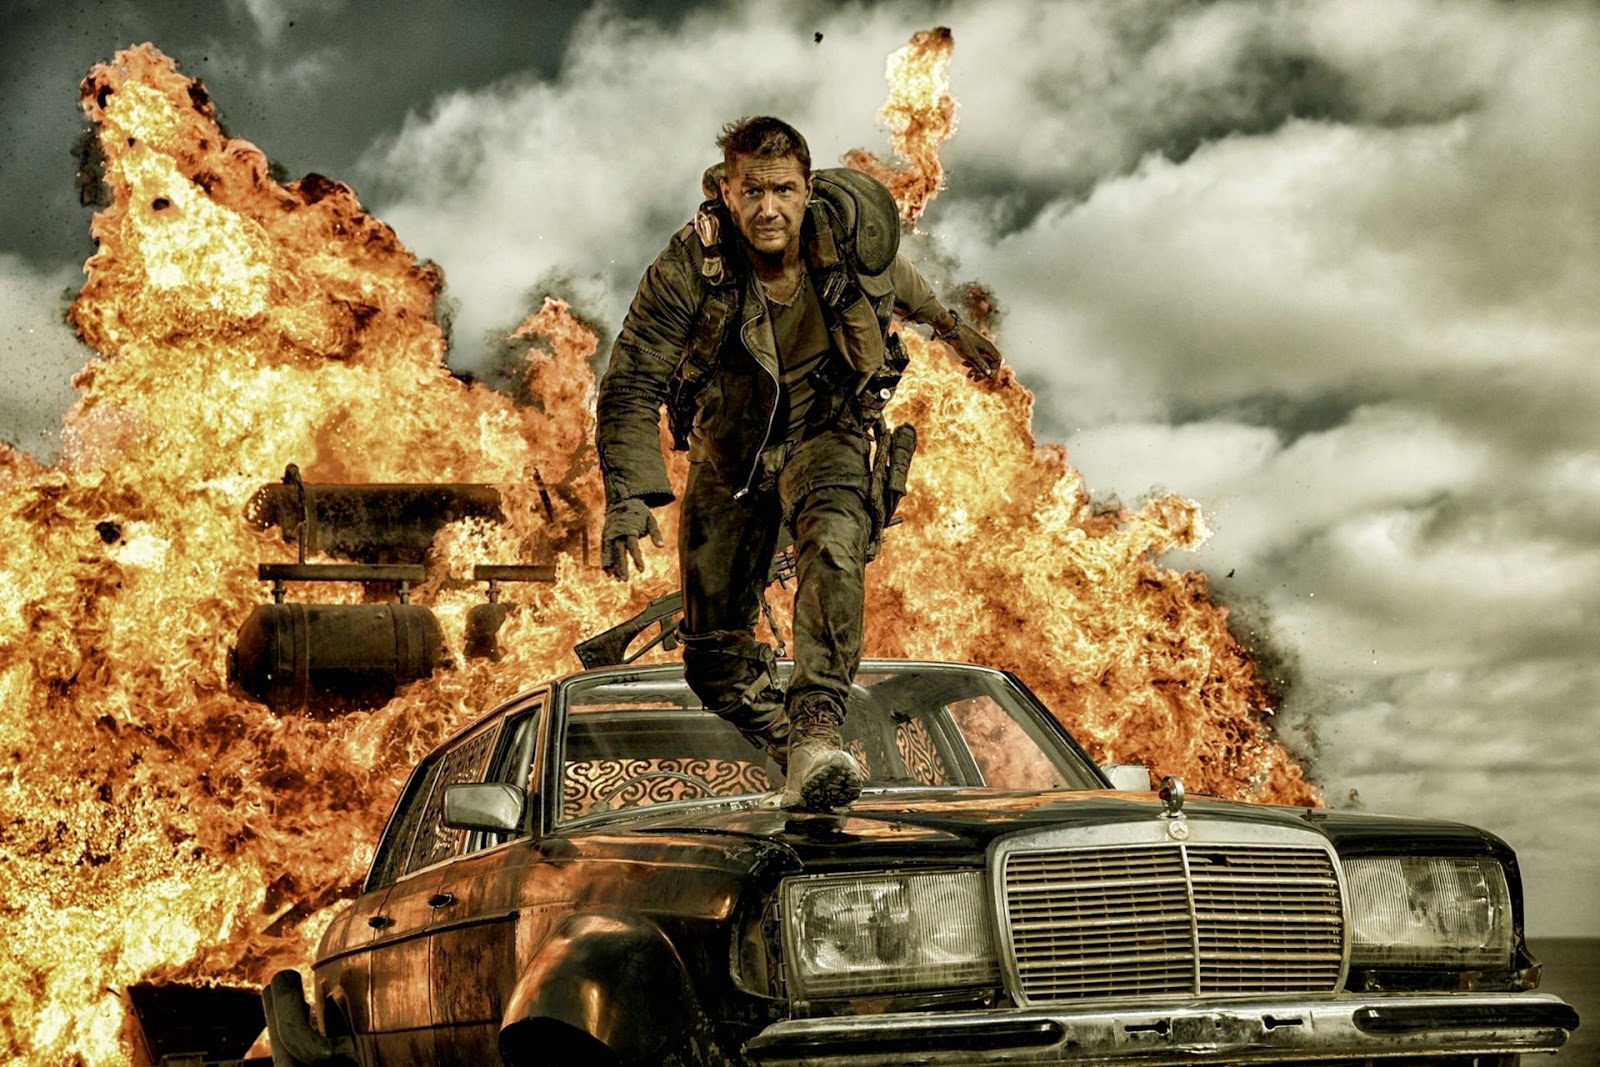 mad max fury road free download download online hd movies